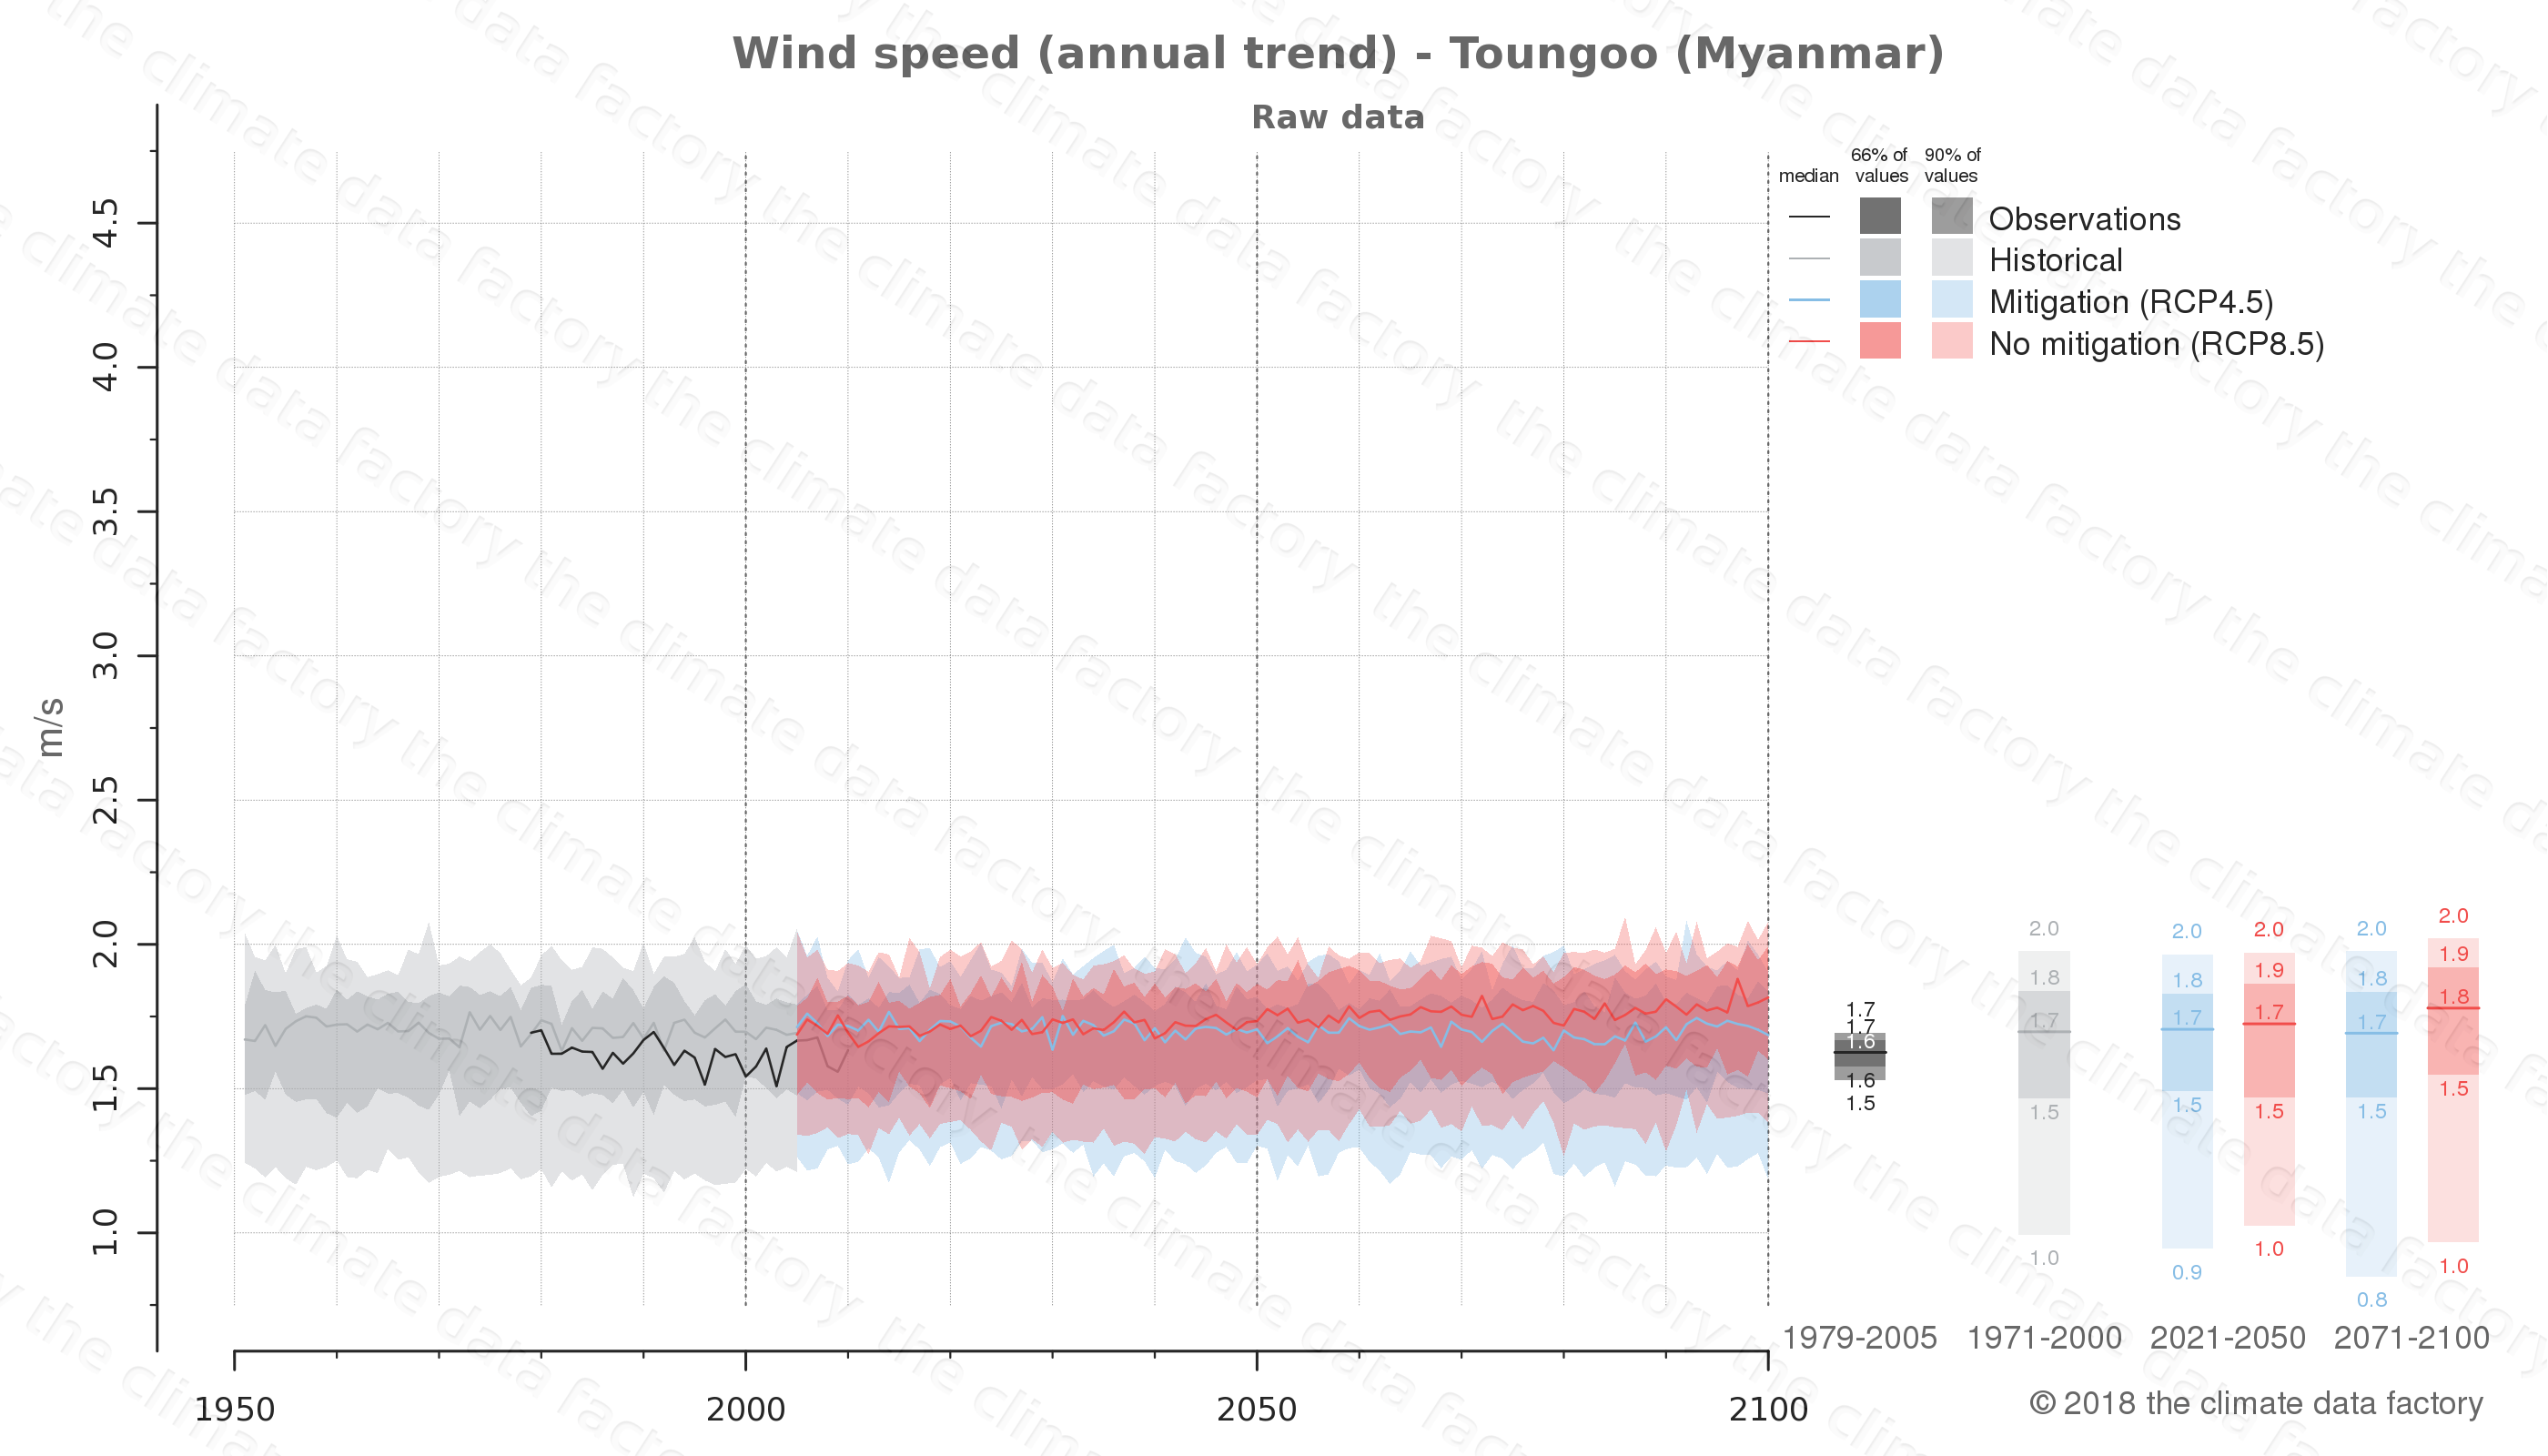 climate change data policy adaptation climate graph city data wind-speed toungoo myanmar